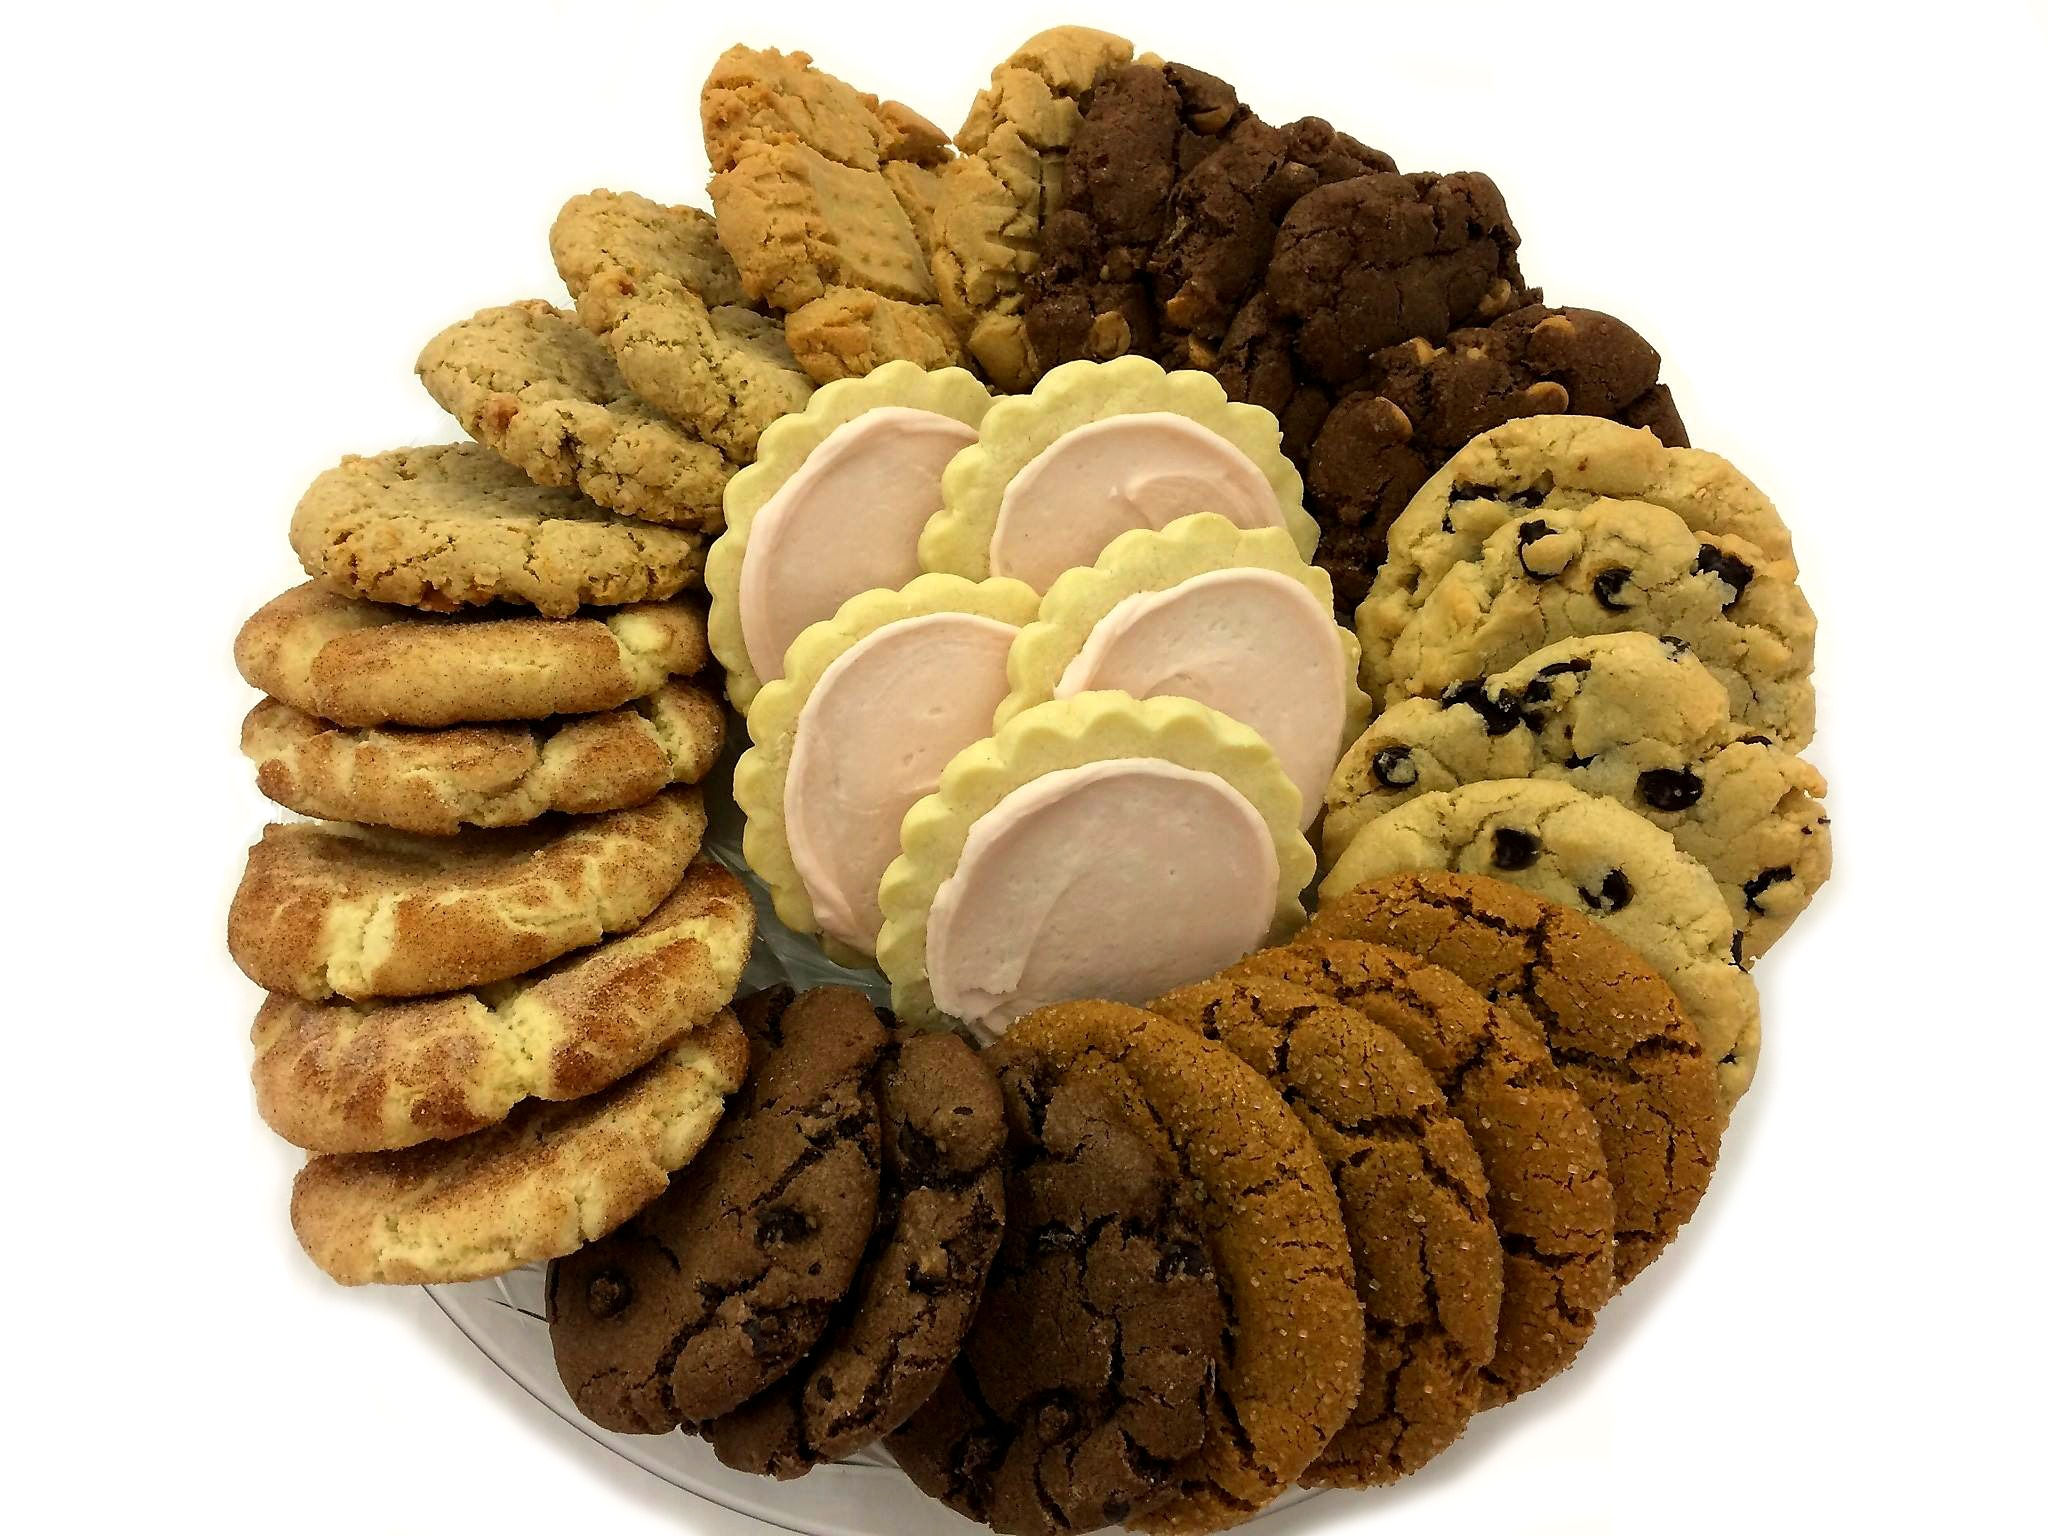 tray of cookies edited 522kb